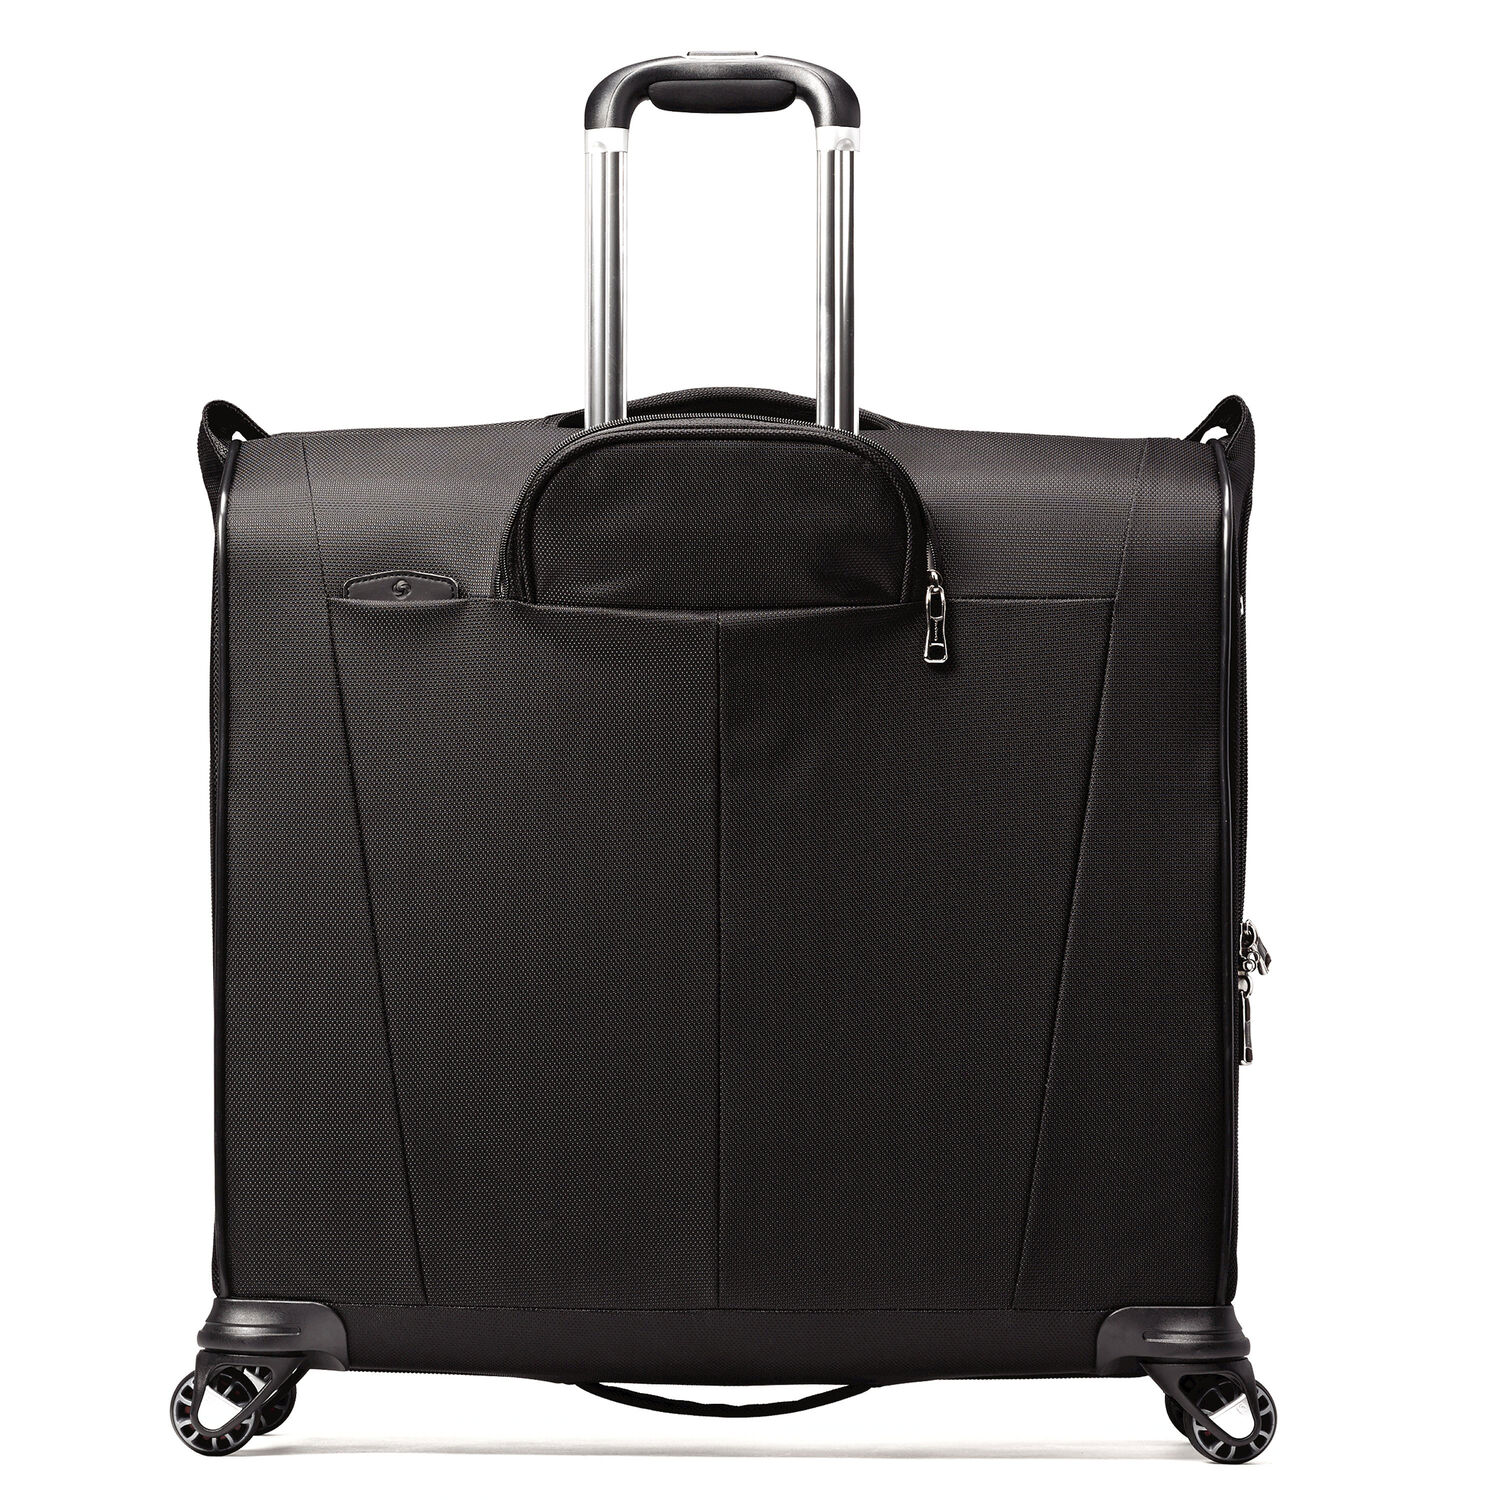 Samsonite Silhouette Sphere 2 Deluxe Voyager Garment Bag In The Color Black